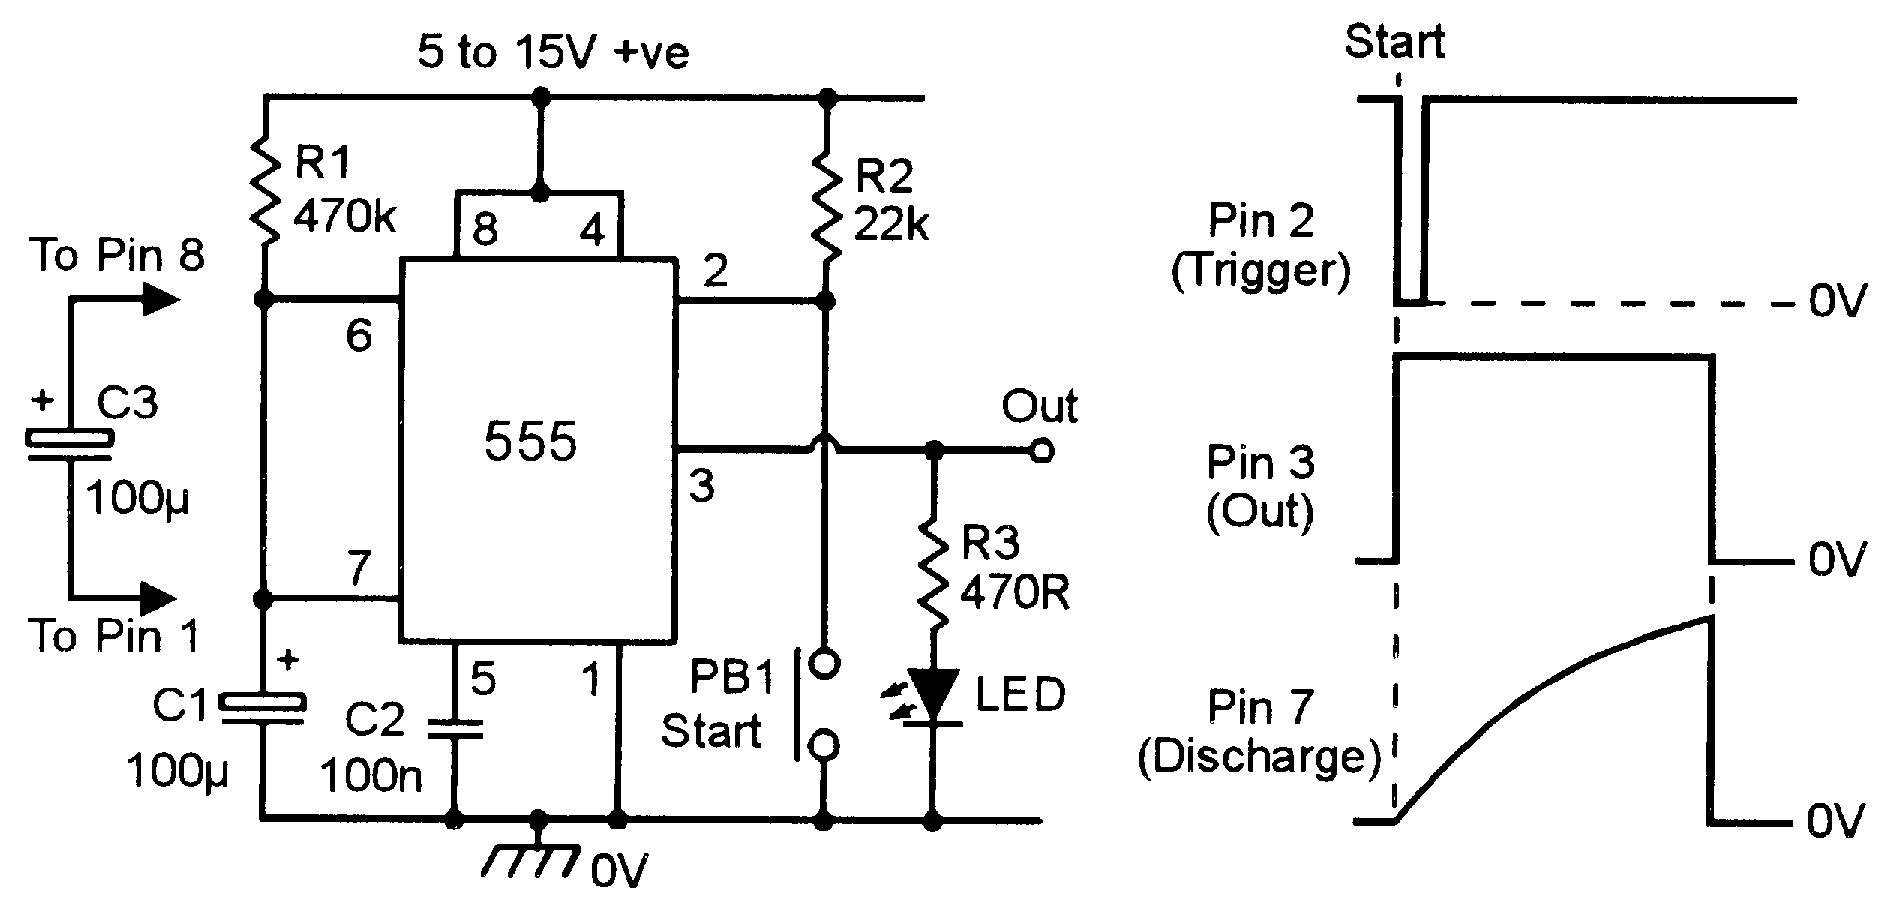 this schematic drawing shows the internal circuit of the